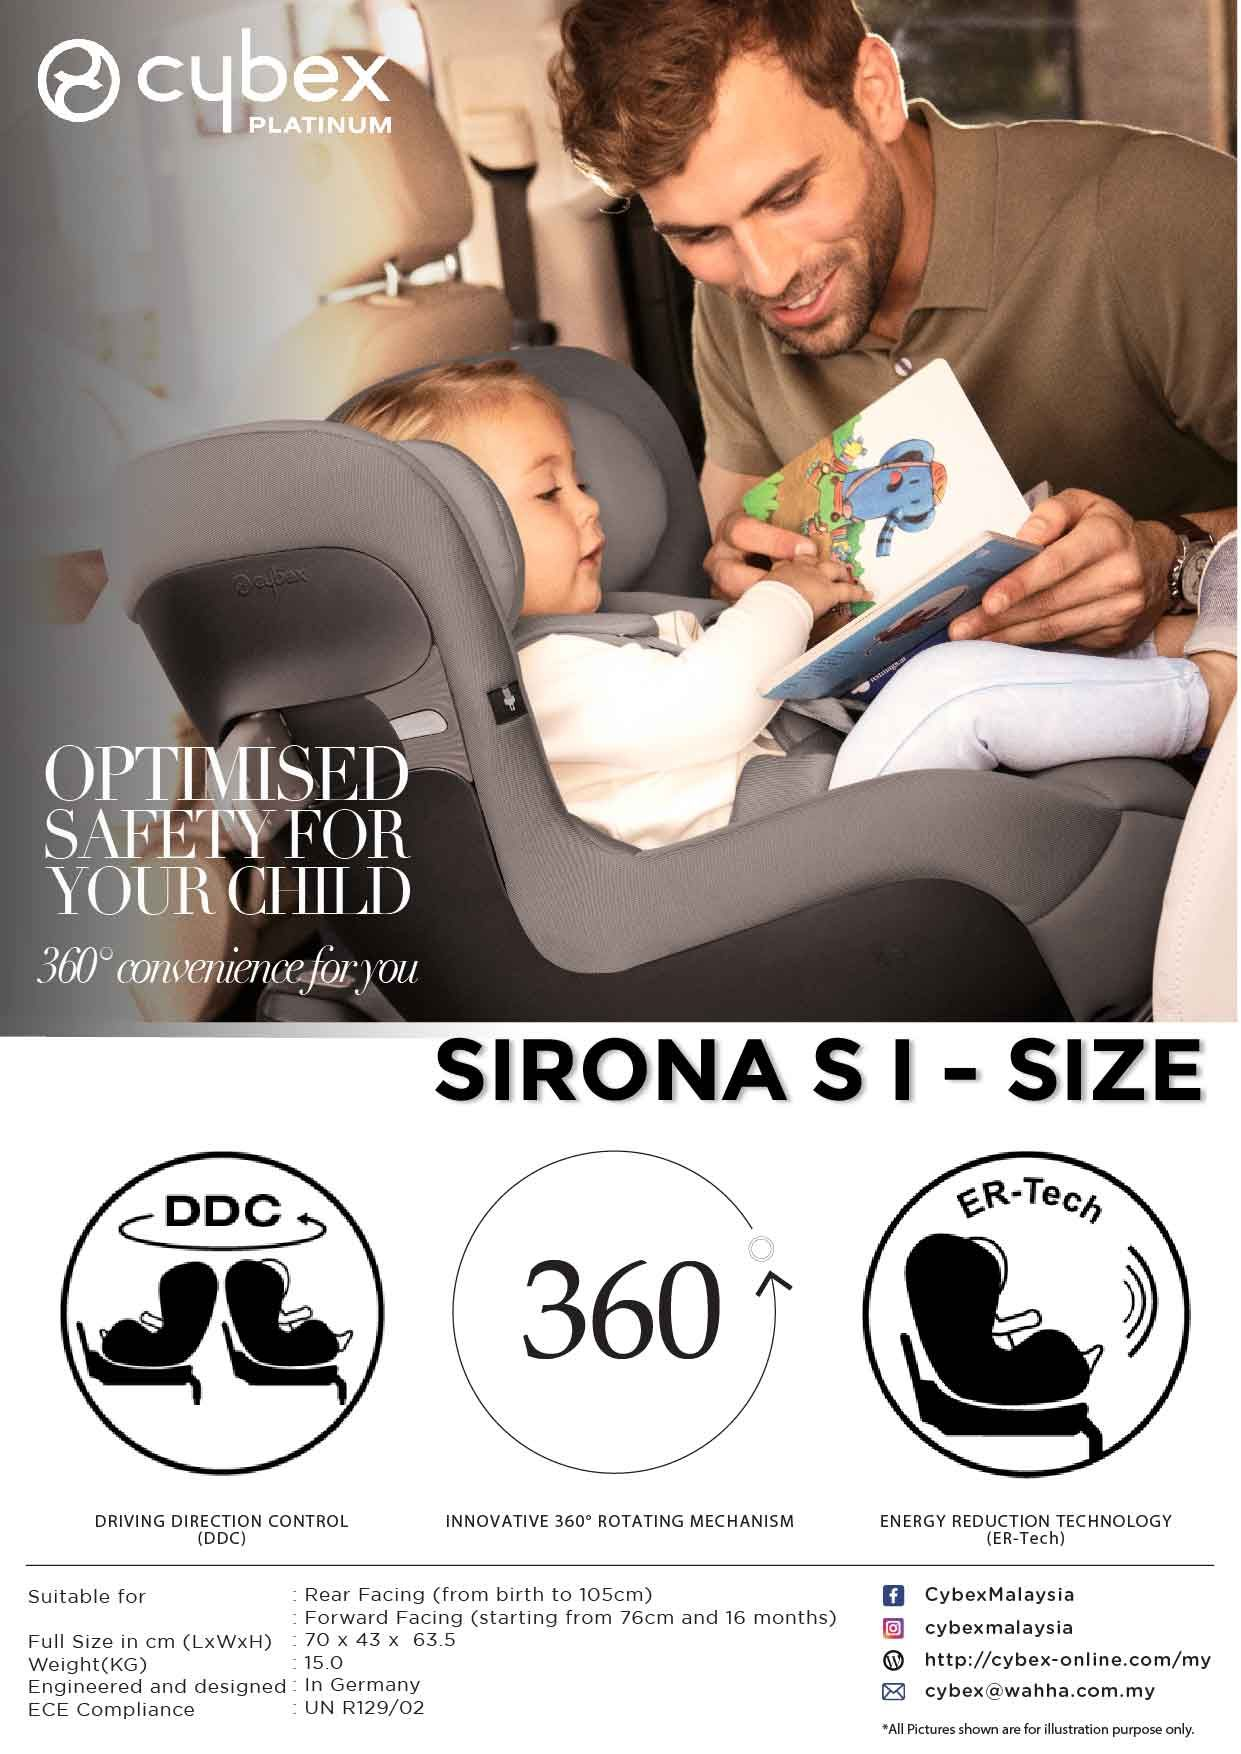 Cybex Sirona S I Size 360 Rotation With Easy Entry Position Rearward Facing Up To 105 Cm Approx 4 Years Driving Dire Cybex Energy Reduction Technology